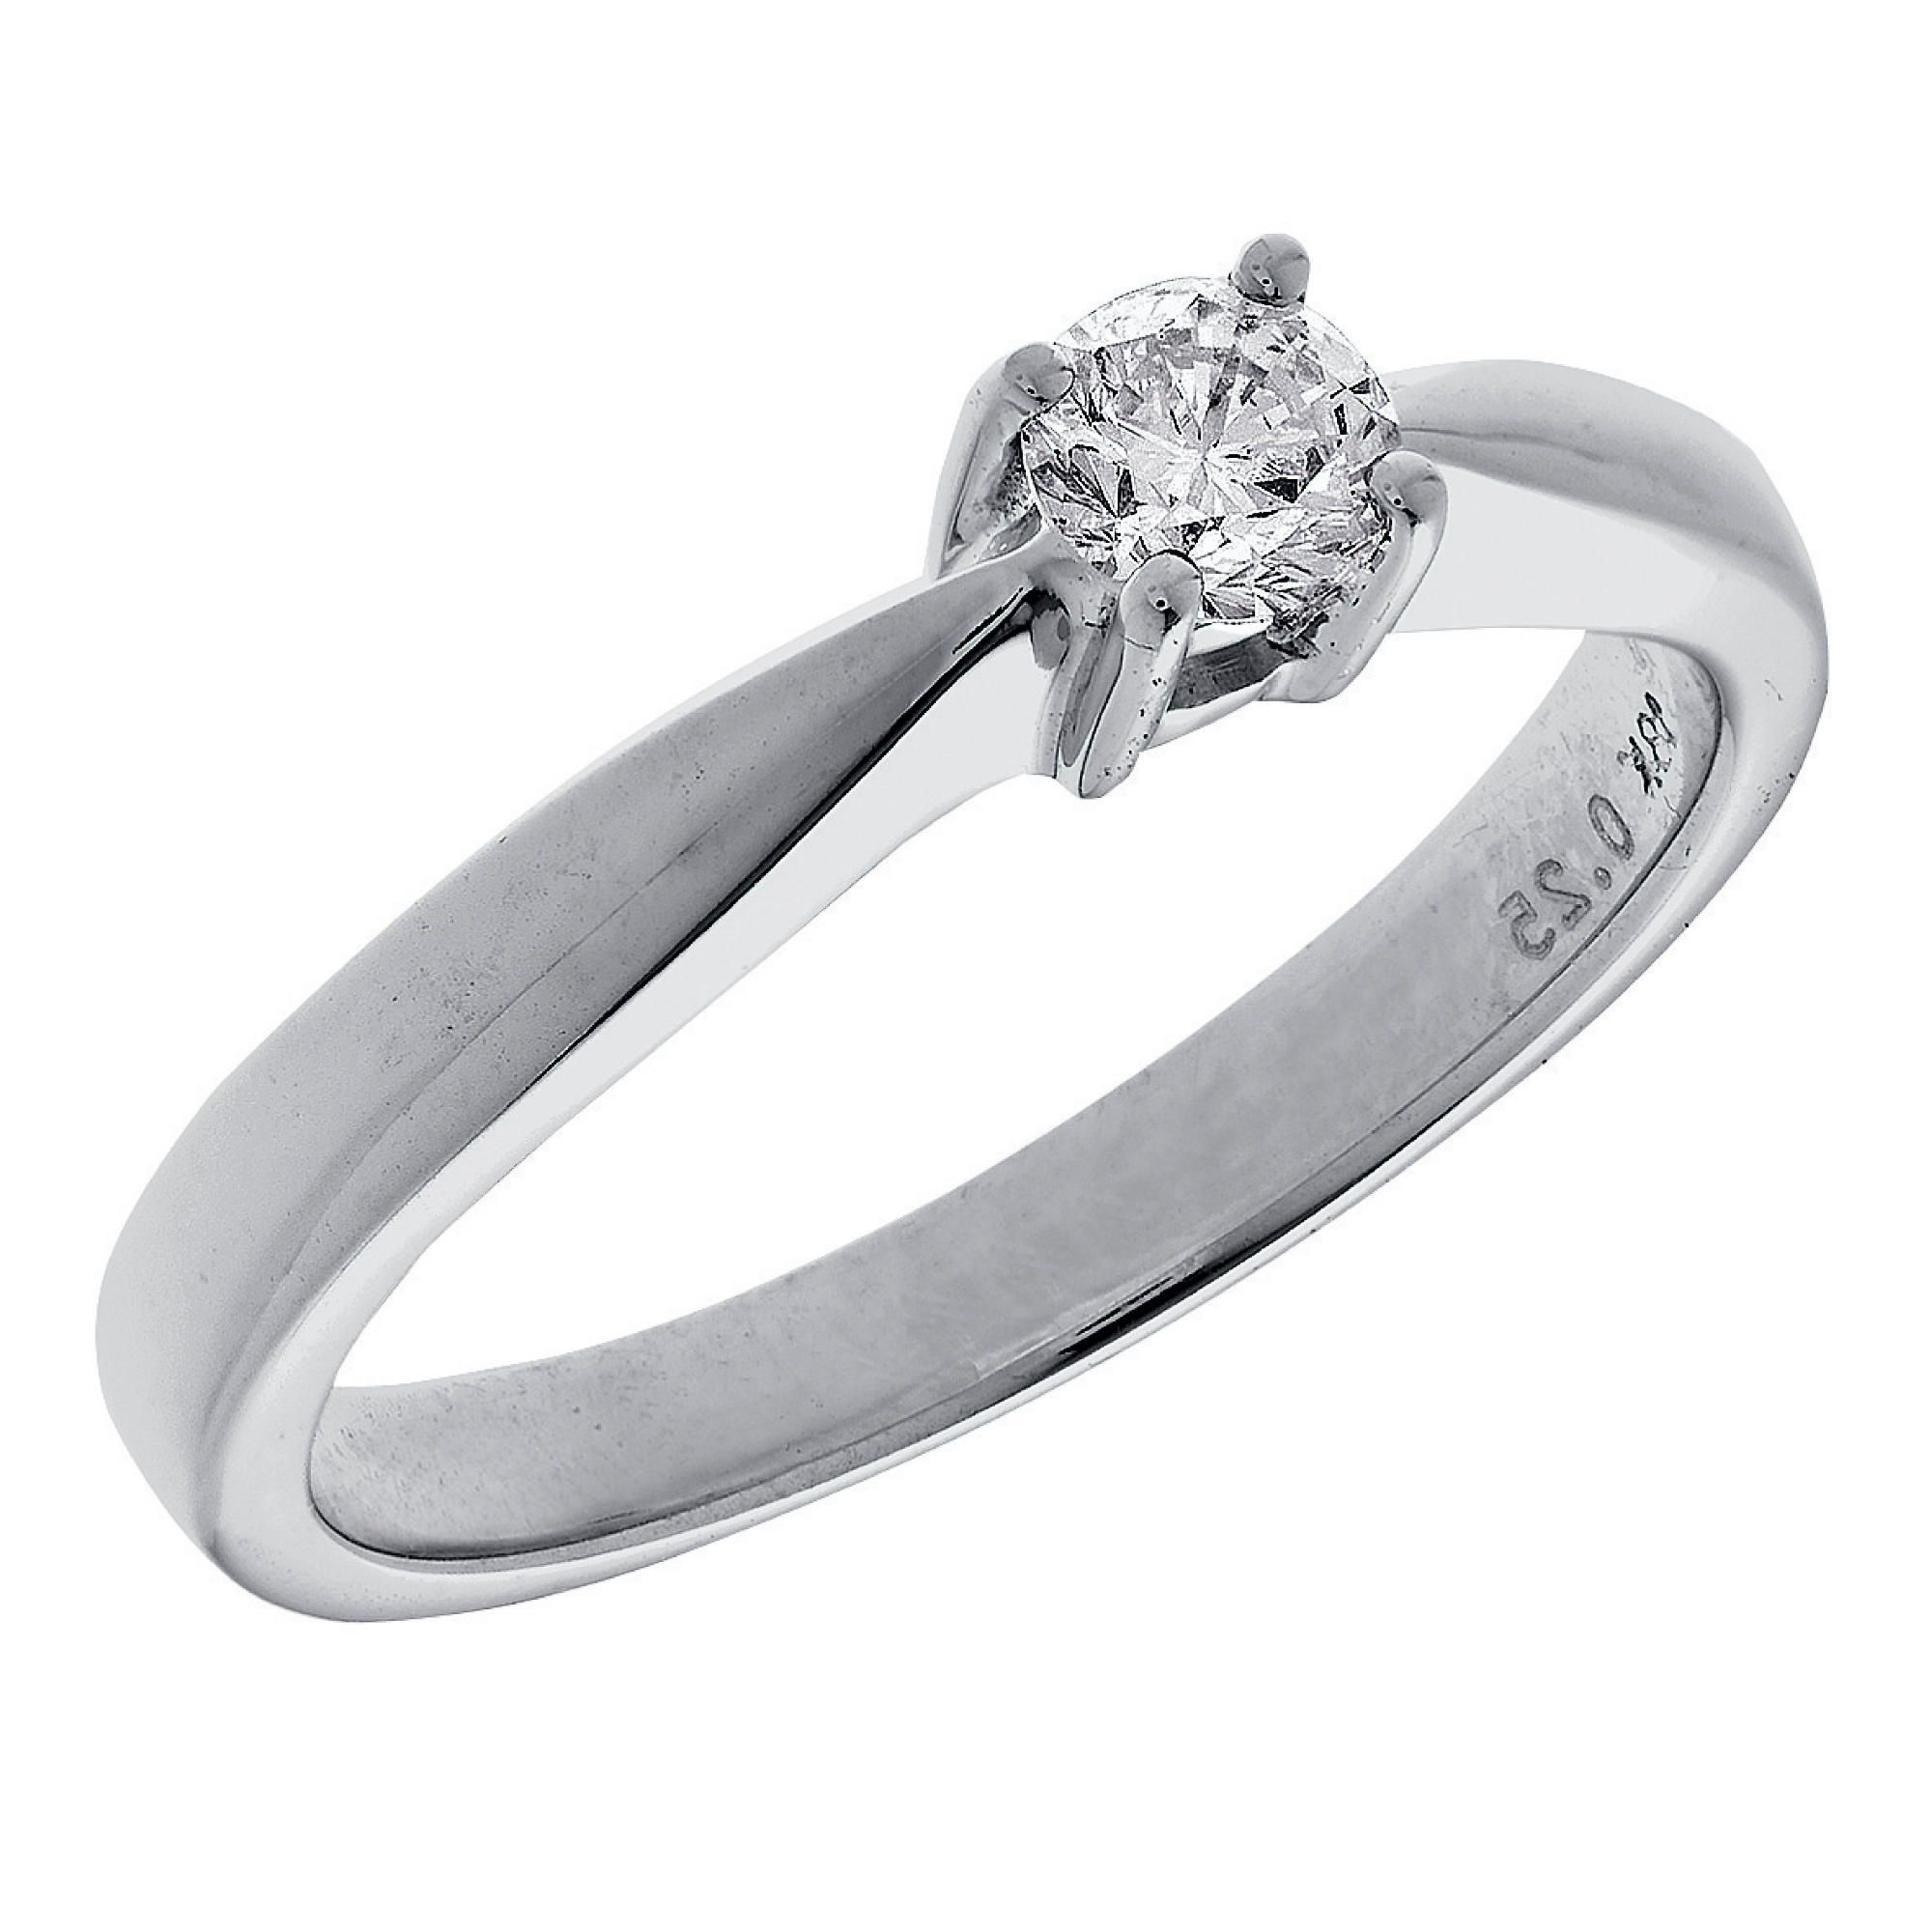 18ct White Gold 25Pt Diamond Solitaire Ring, L at Tesco Direct